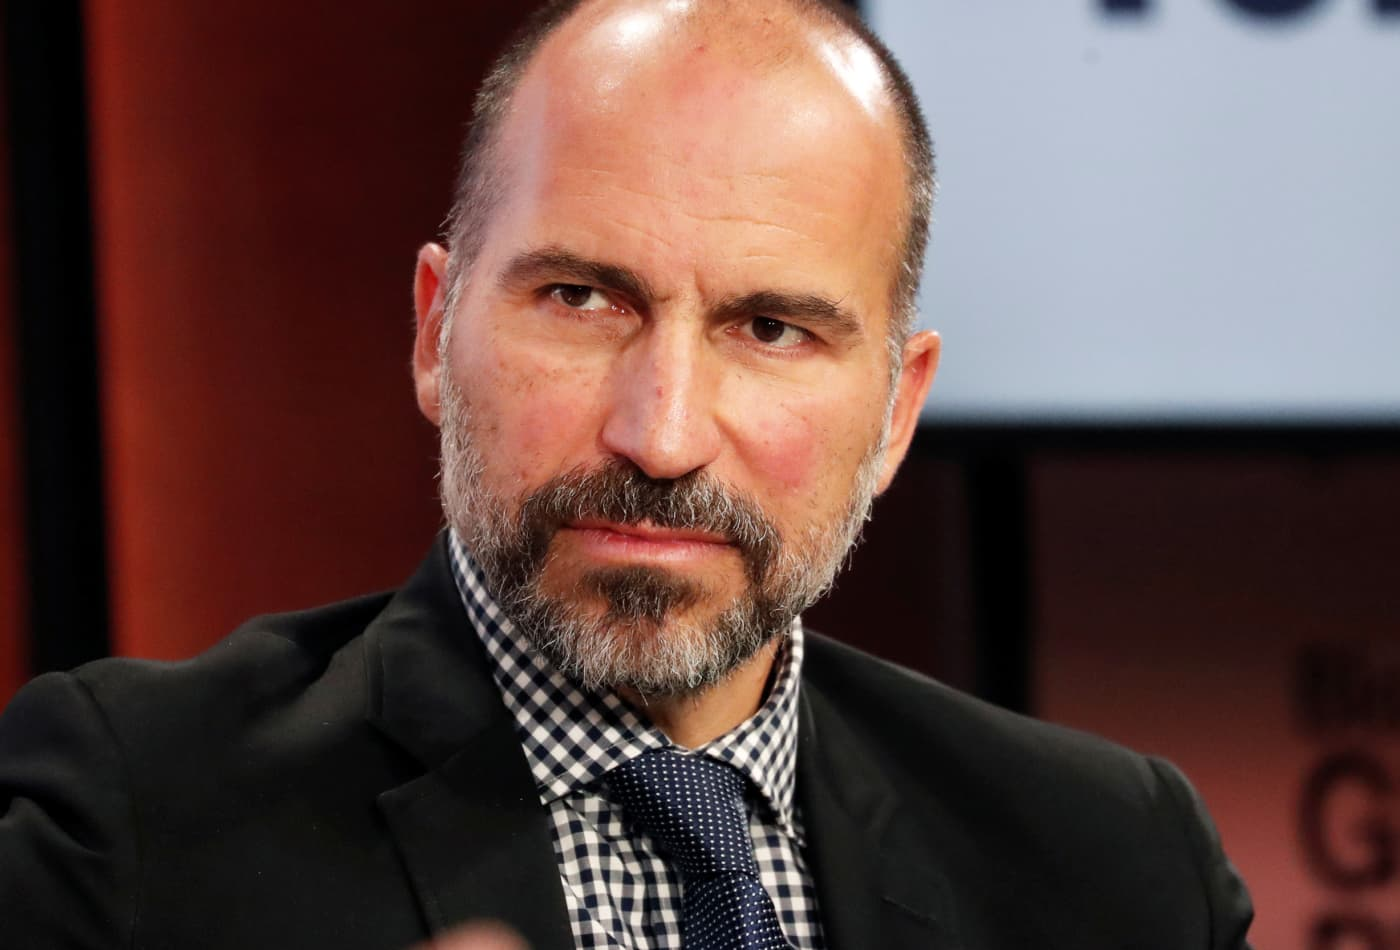 'Uber's clearly gotten its act together' in order to become profitable, Jim Cramer says